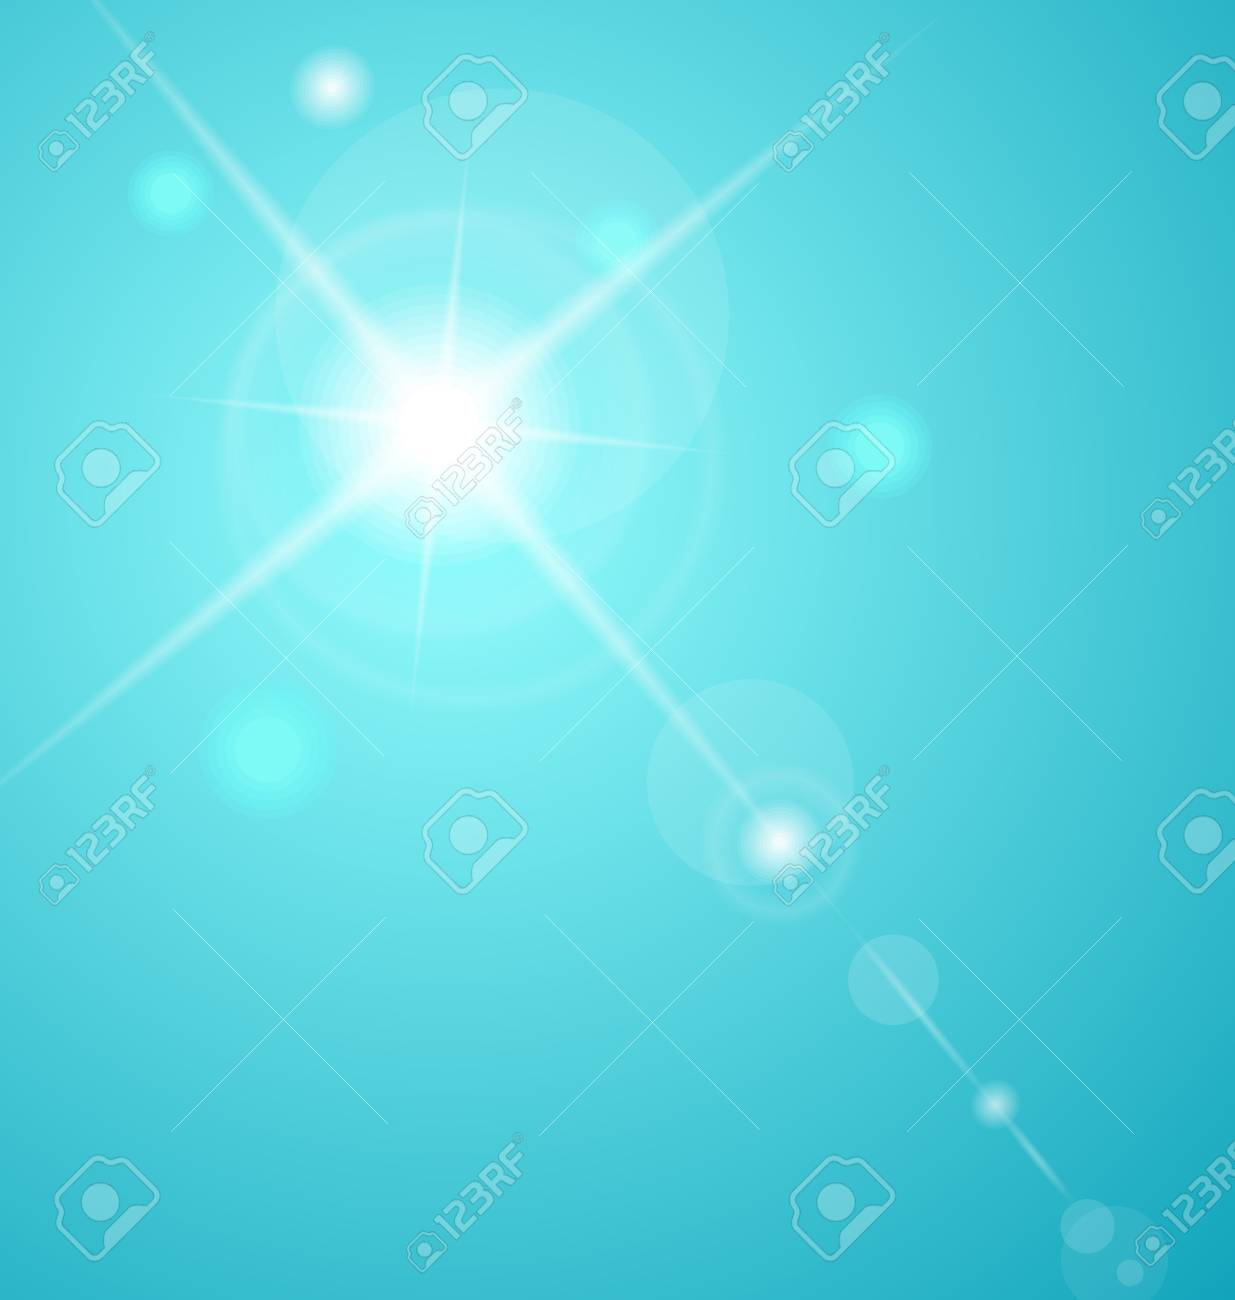 Illustration abstract star with lenses flare - vector Stock Photo - 12710093